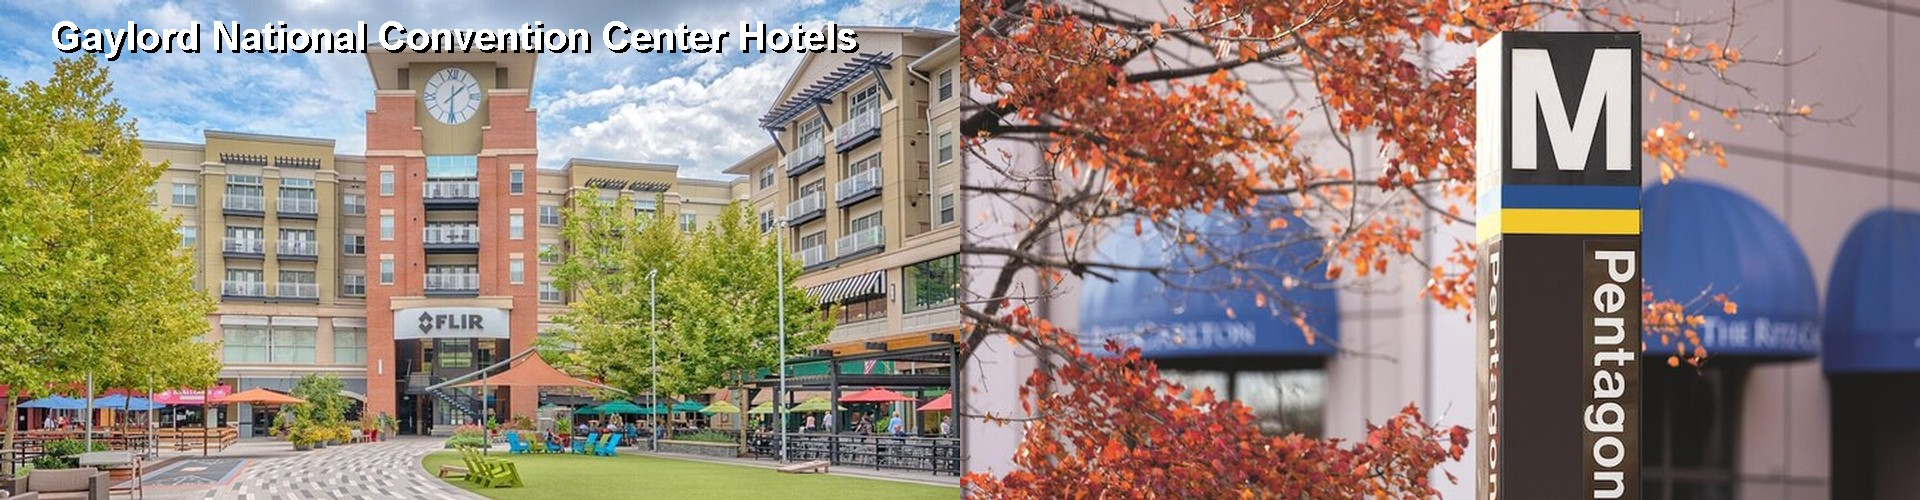 5 Best Hotels near Gaylord National Convention Center